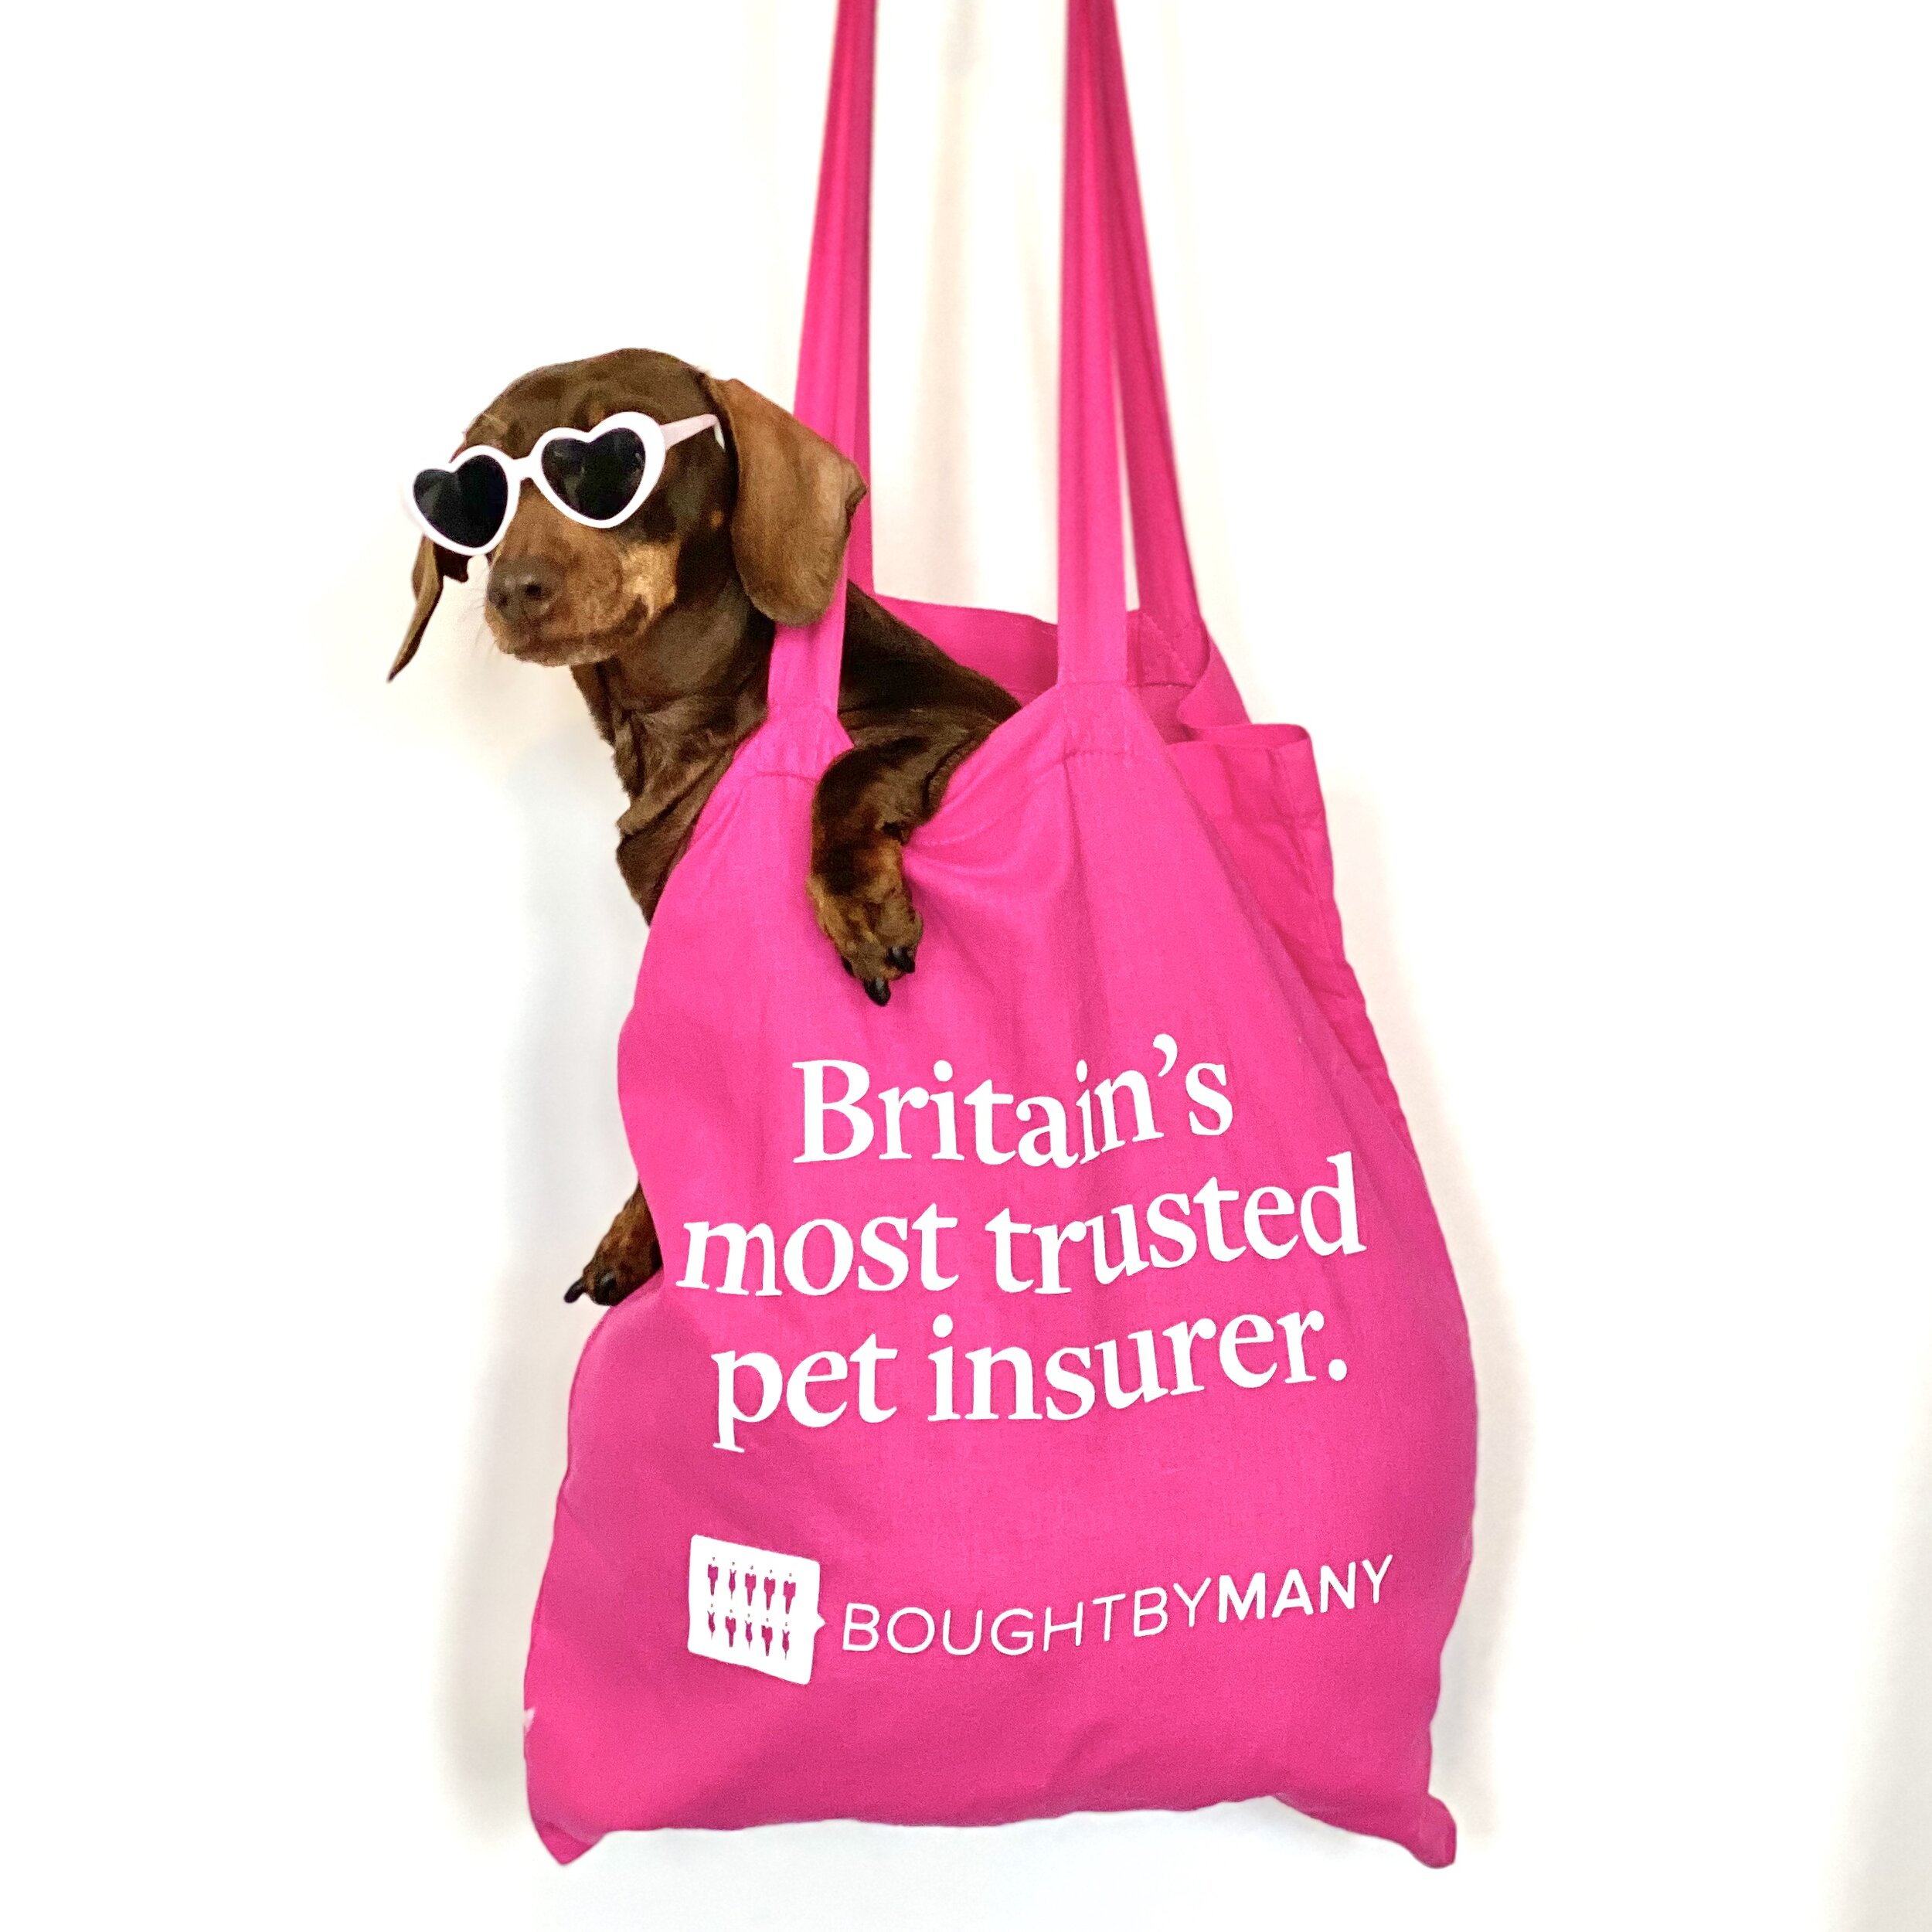 Bought by Many - Pet insurance — BANGERS&MASH